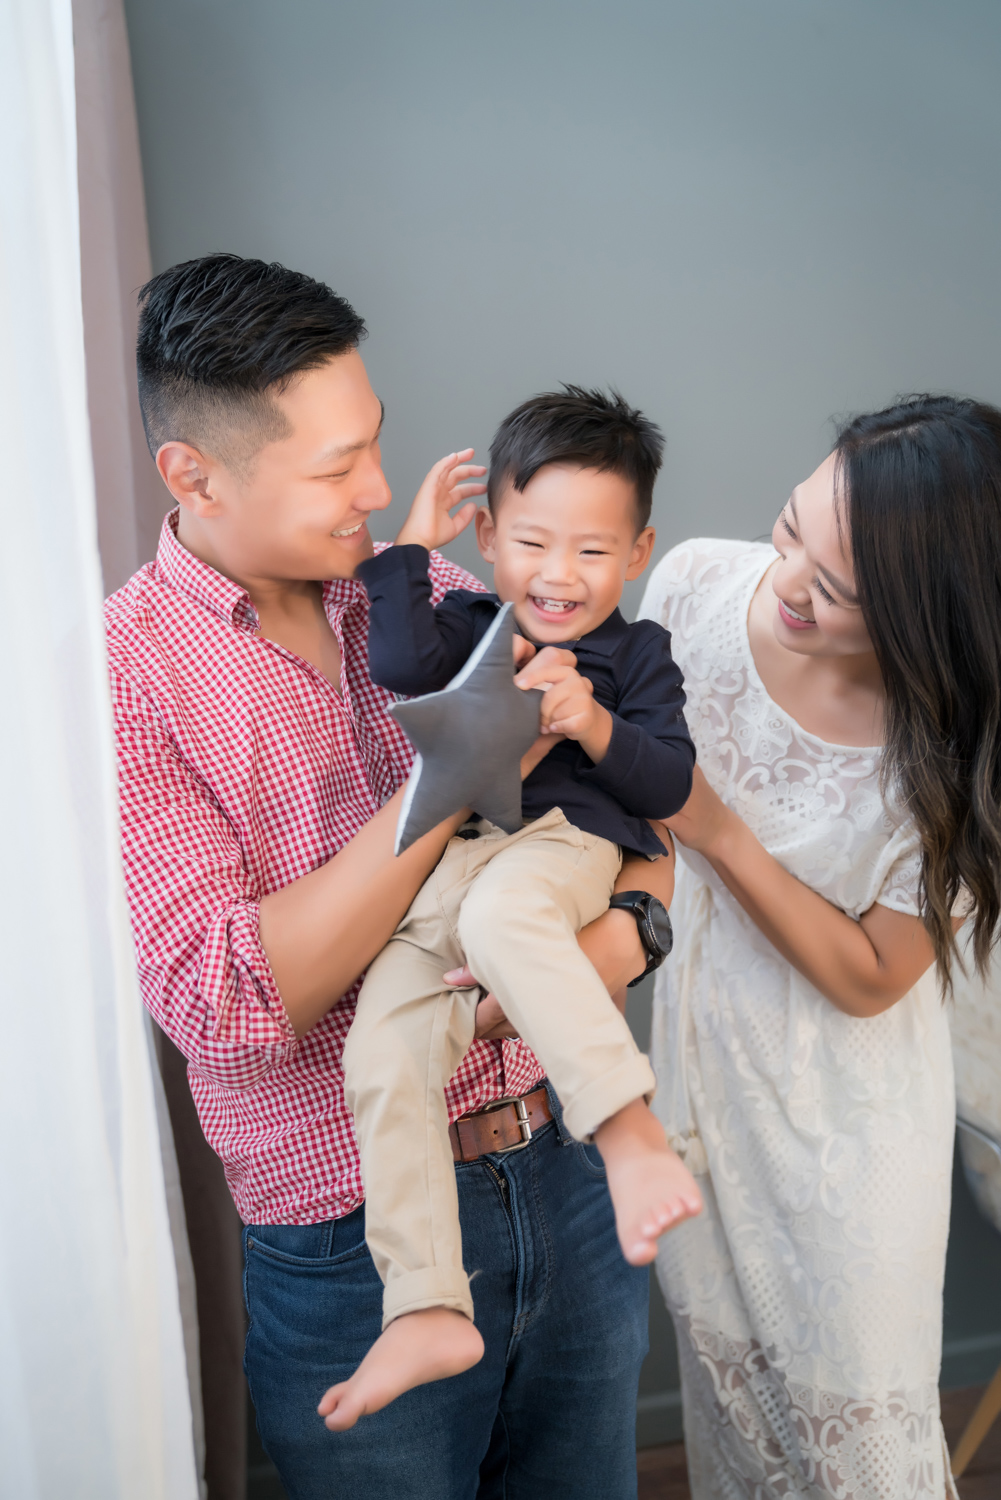 Parents tickle son and smile during family photoshoot in Chicago photo studio.